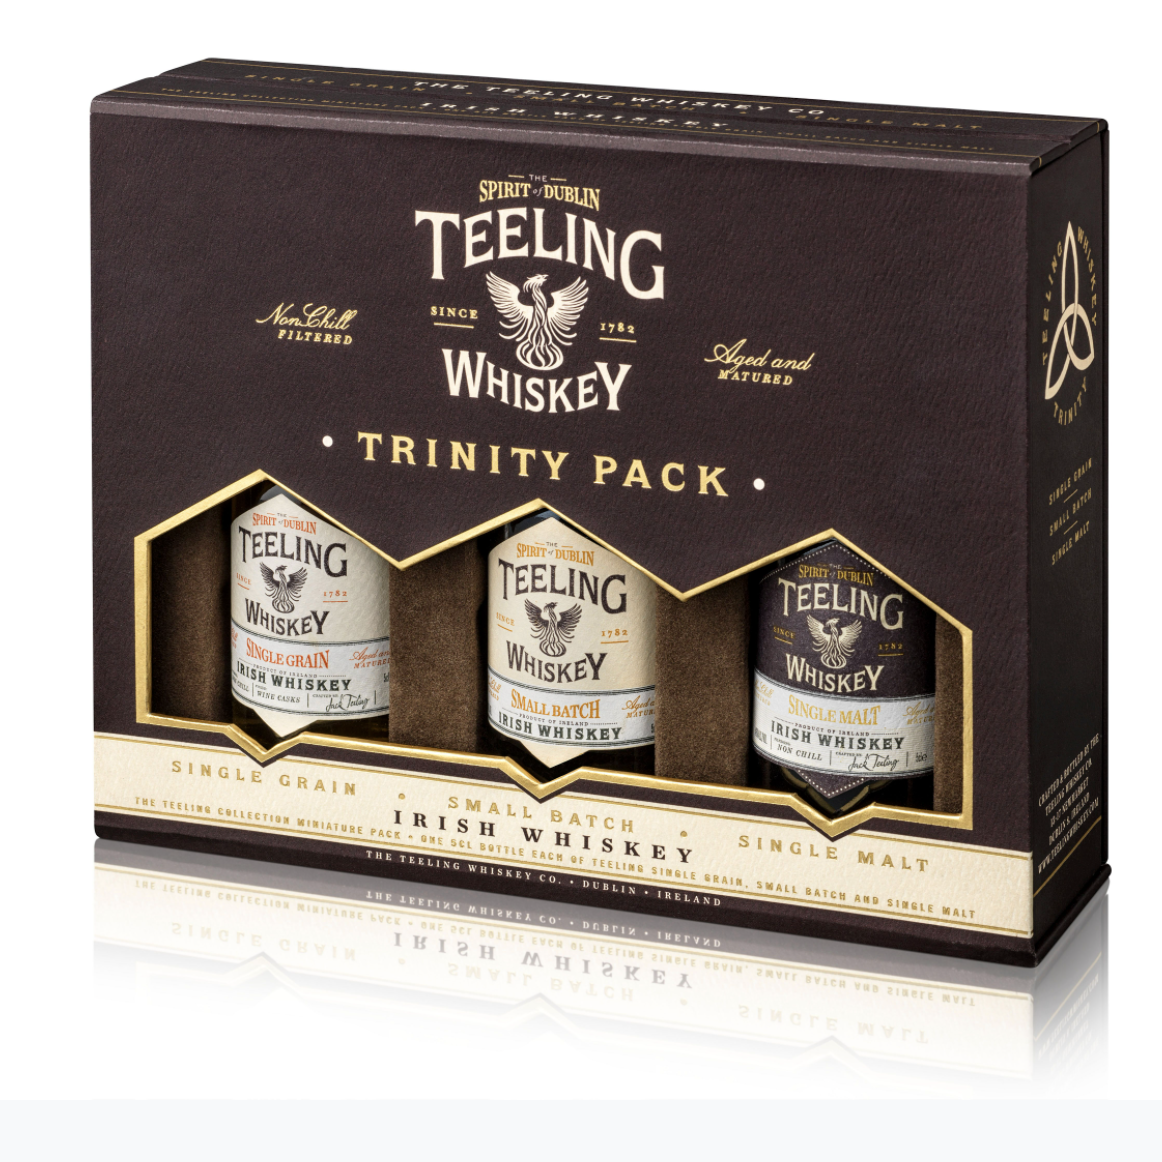 Teeling Whiskey Trinity Pack